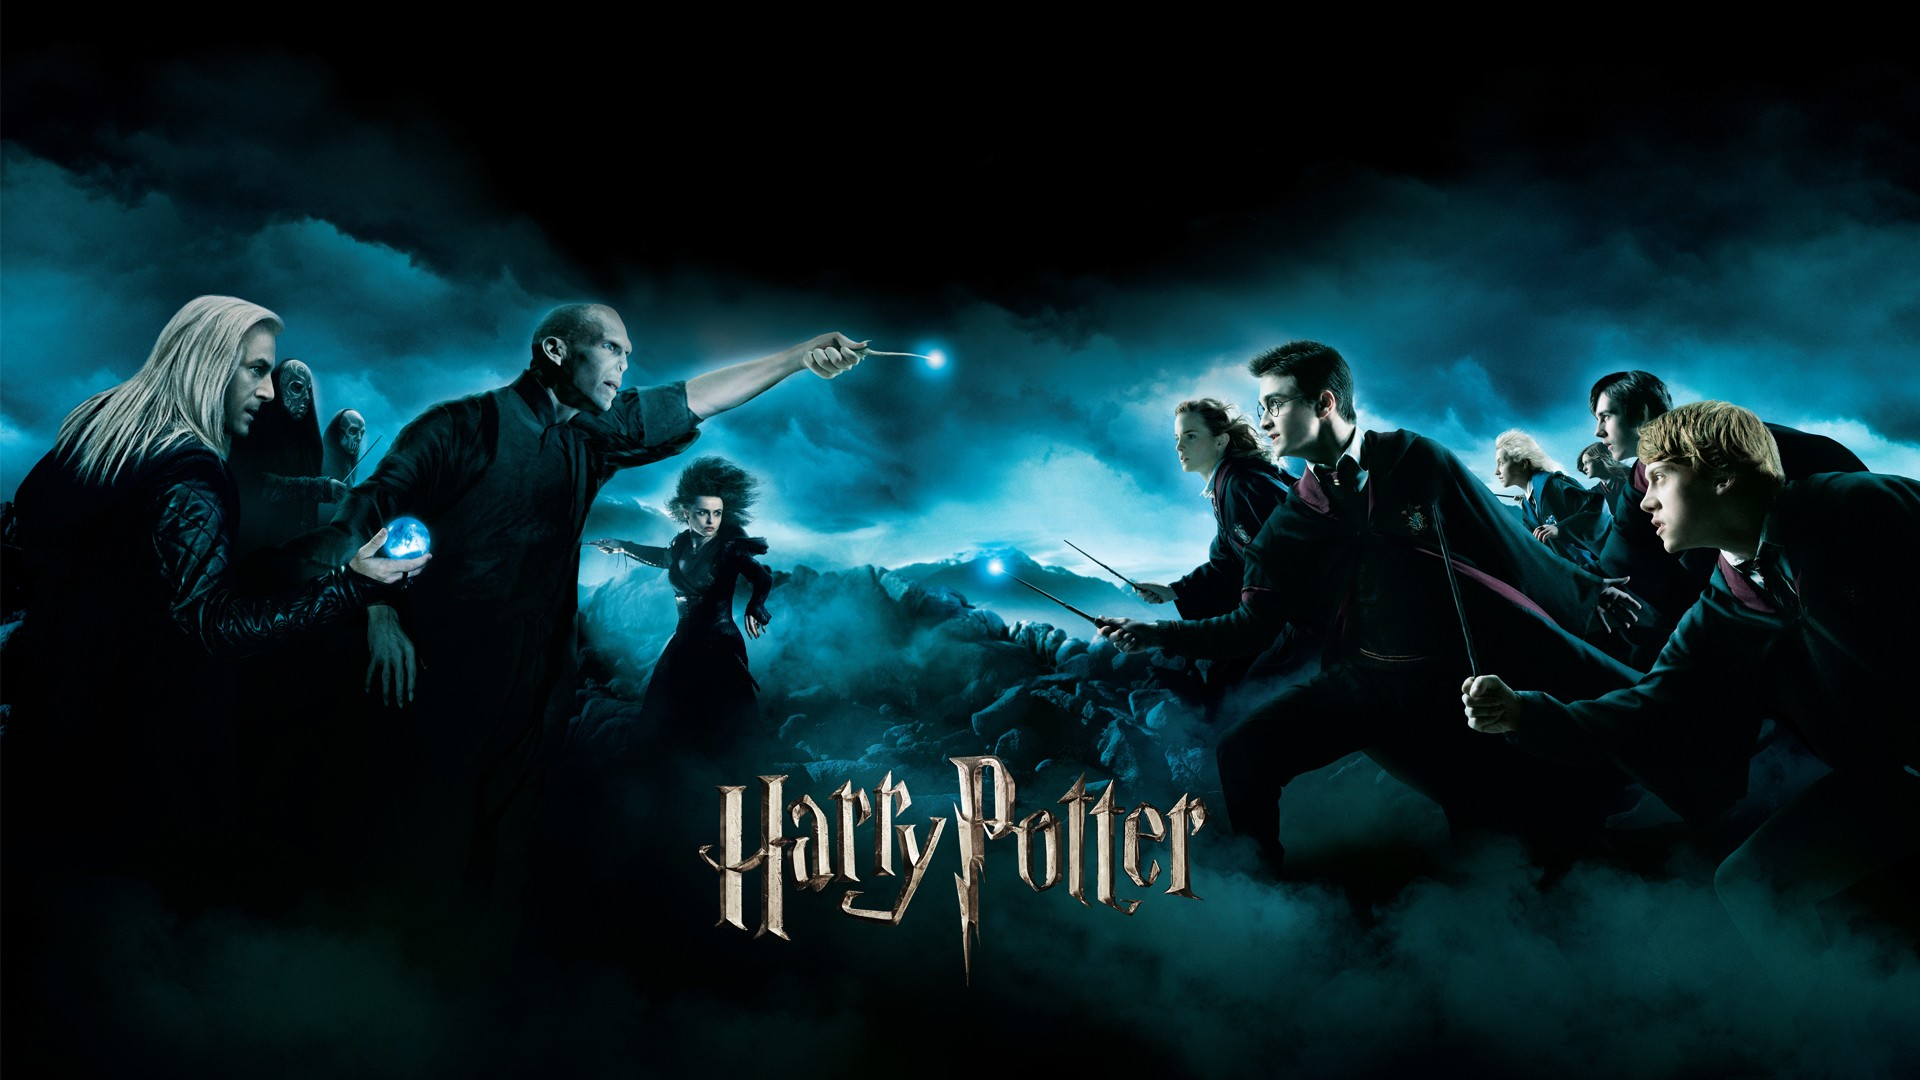 Harry potter wallpaper download free amazing high resolution harry potter wallpaper 2048x1110 mac voltagebd Image collections